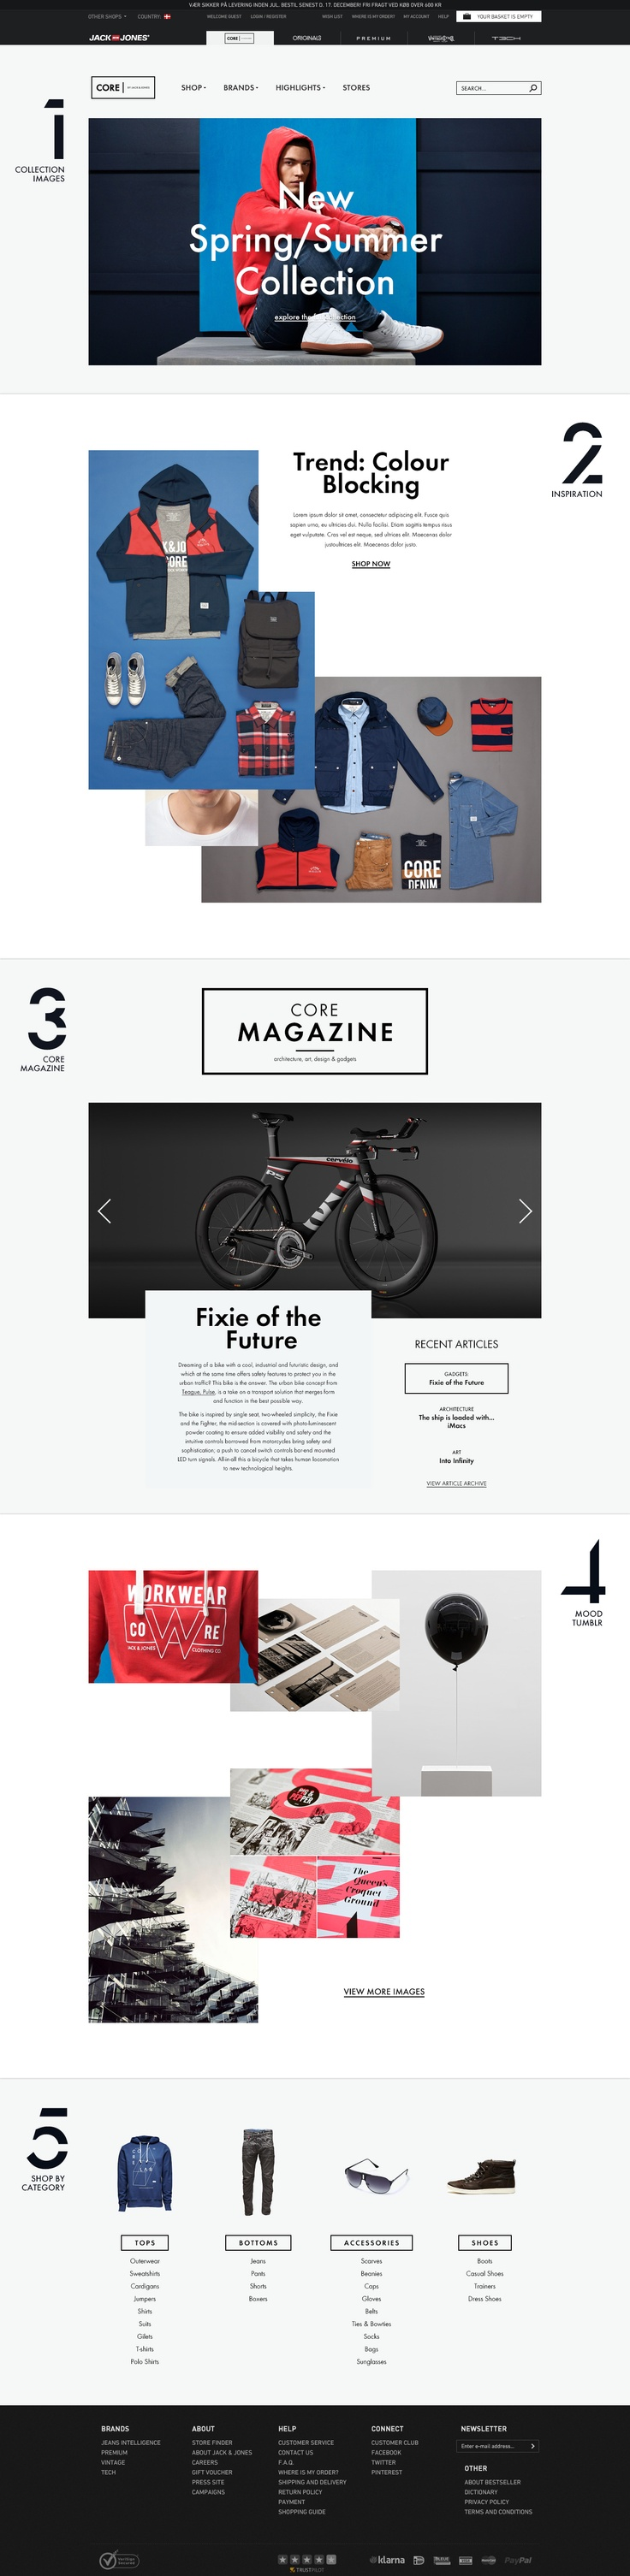 CORE by Jack & Jones — #web #design #clean #white #ux #ui